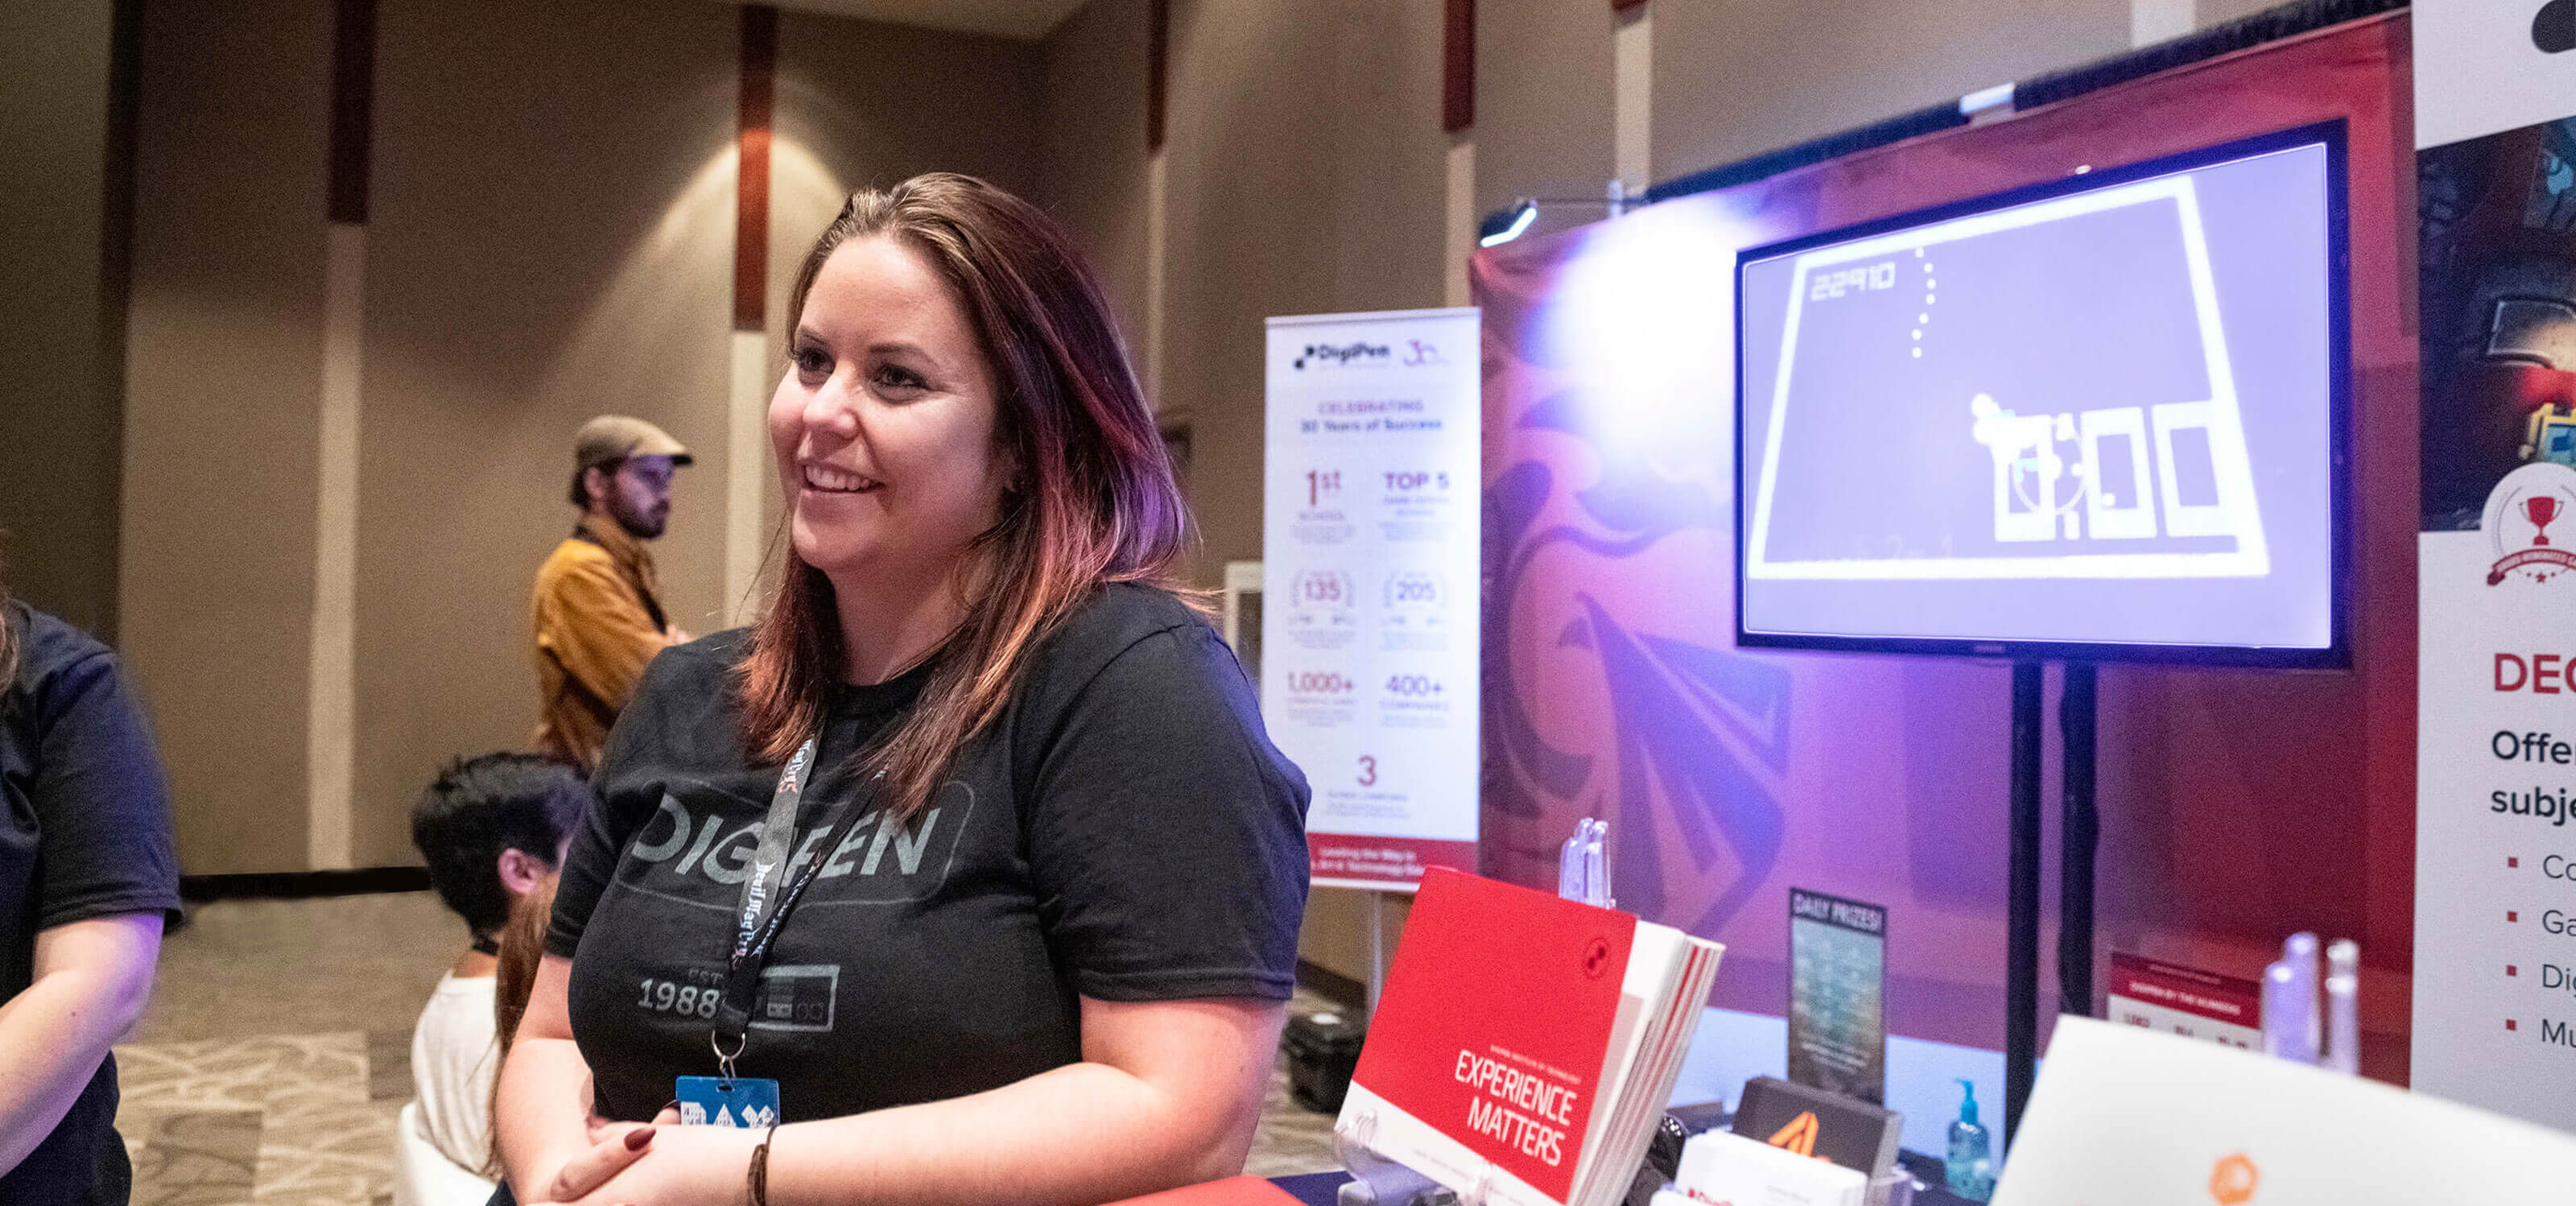 A DigiPen outreach staff member speaking to prospective students at PAX West